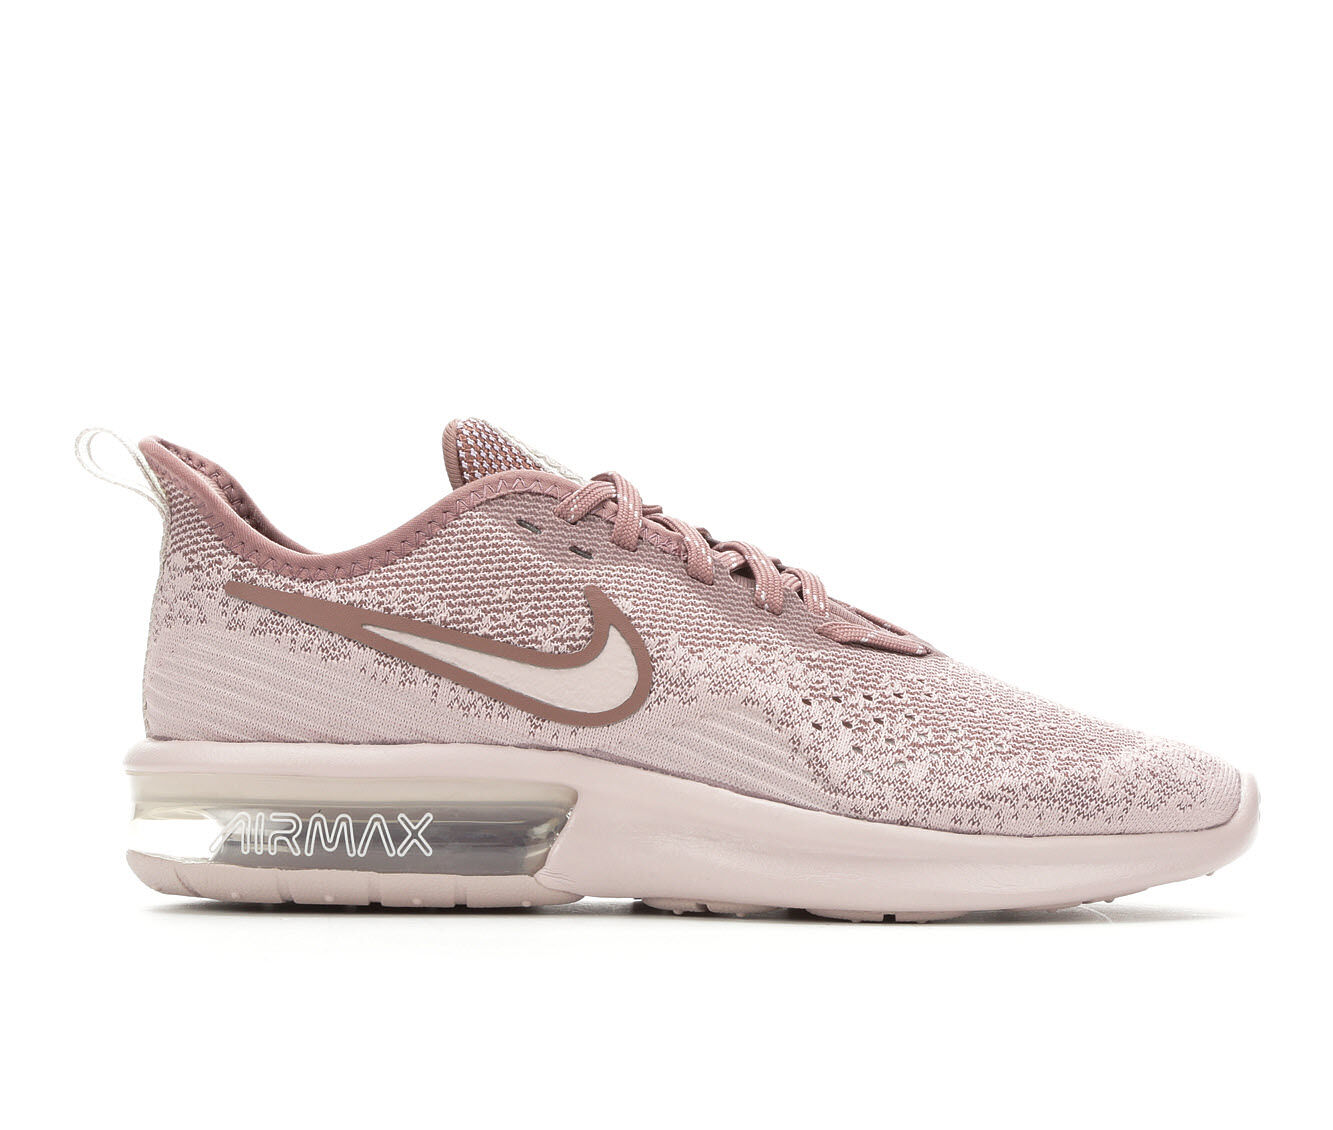 Women's Nike Air Max Sequent 4 Running Shoes Rose/Mauve